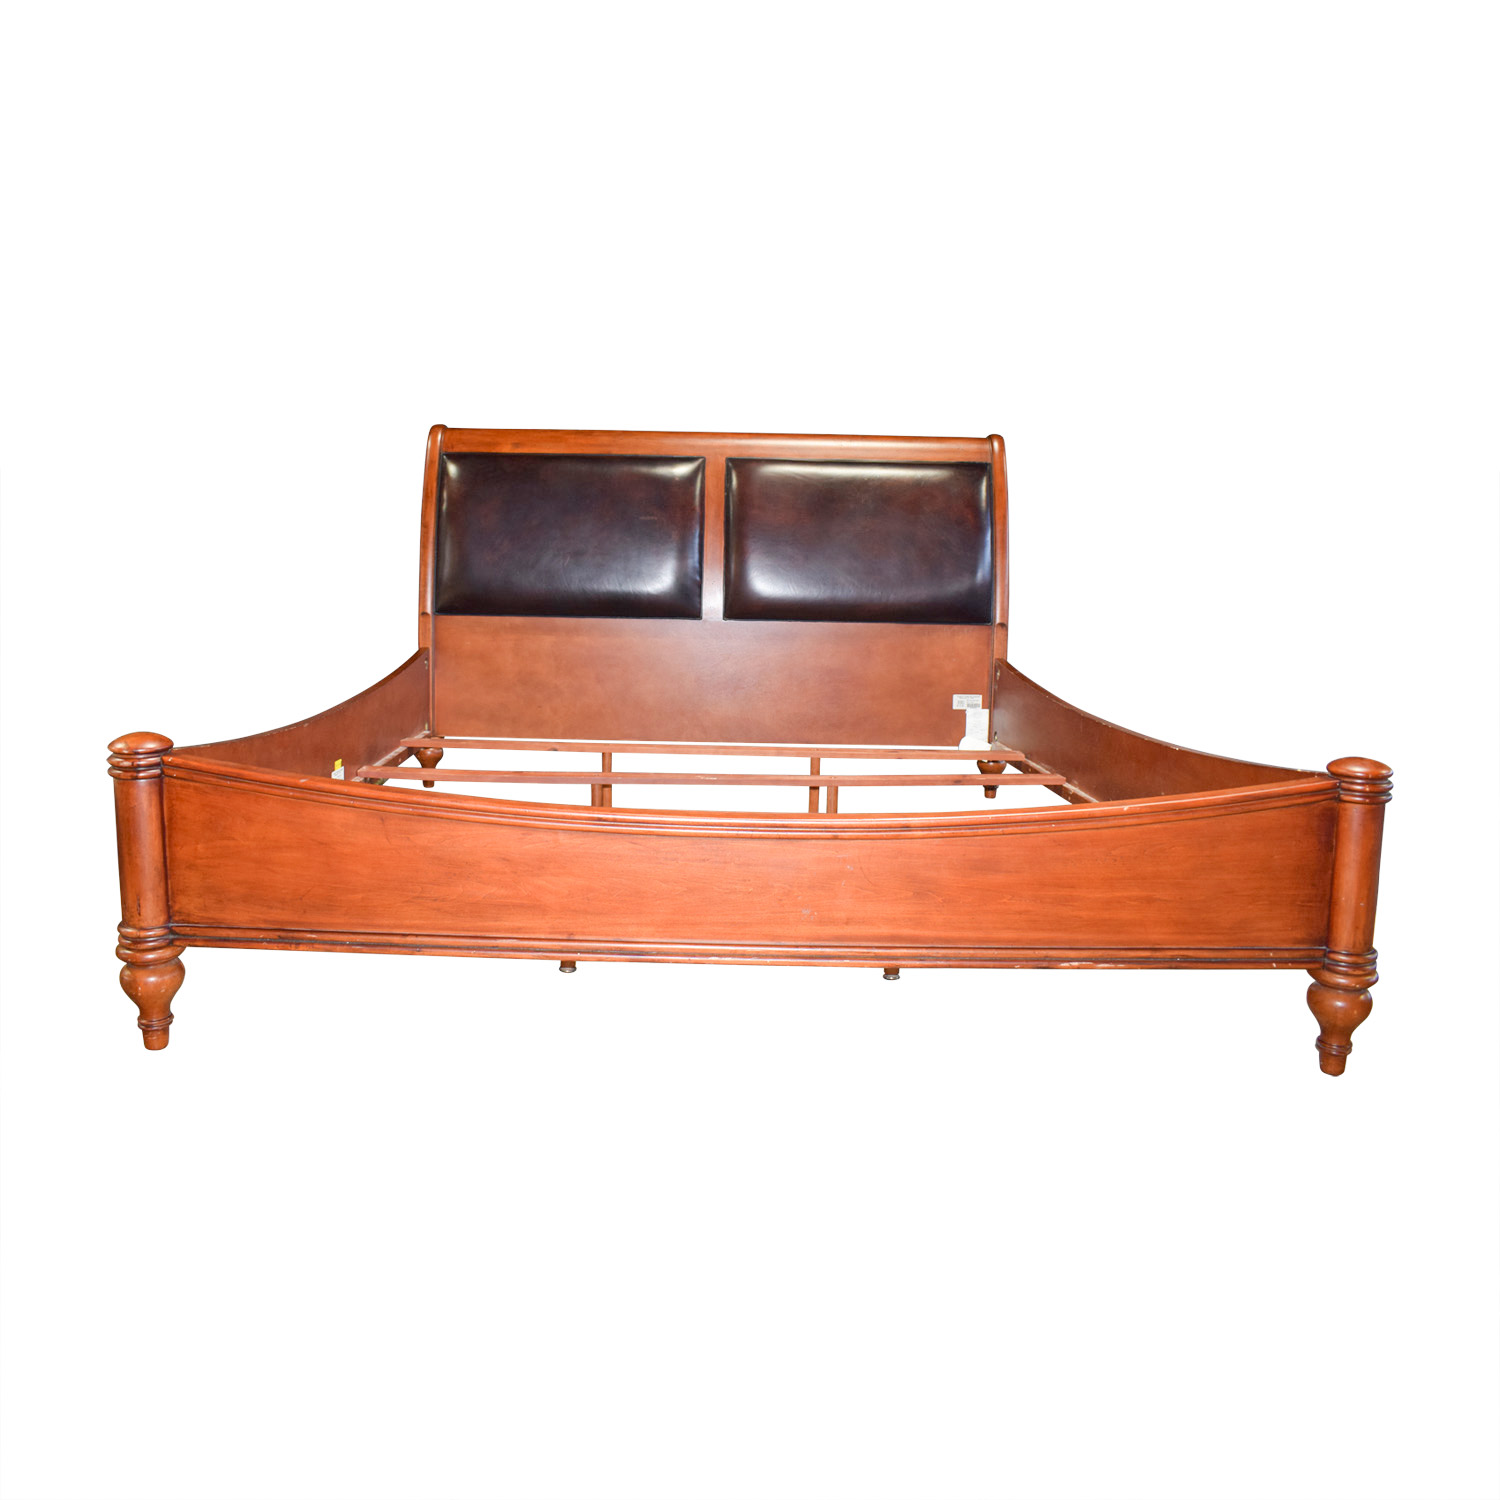 Stanley Furniture Stanley Furniture Leather and Wood Sleigh King Bed Frame used